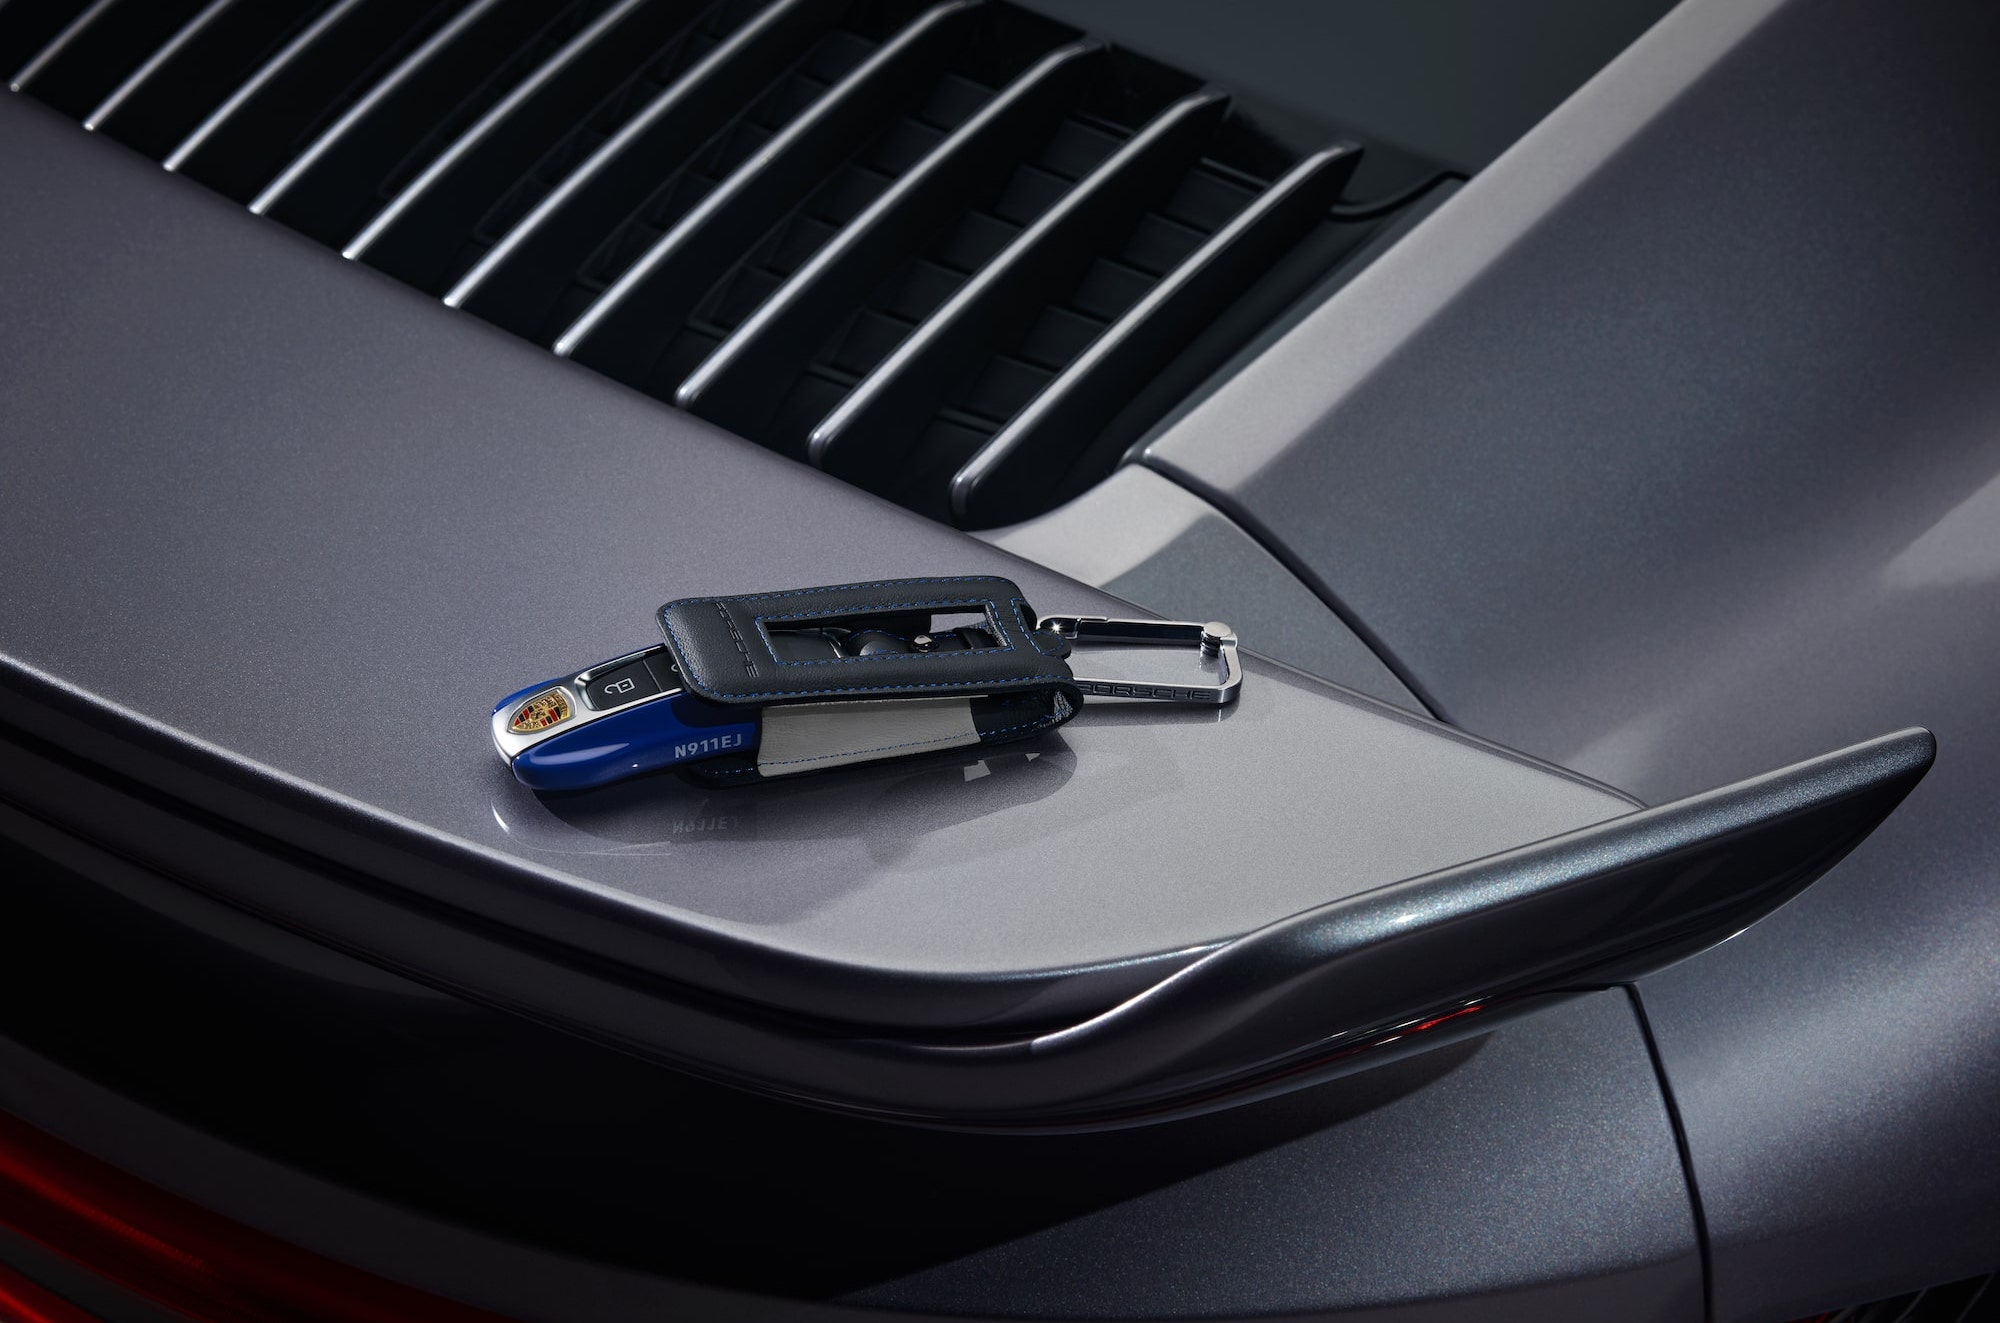 Keys of the Duet Porsche 911